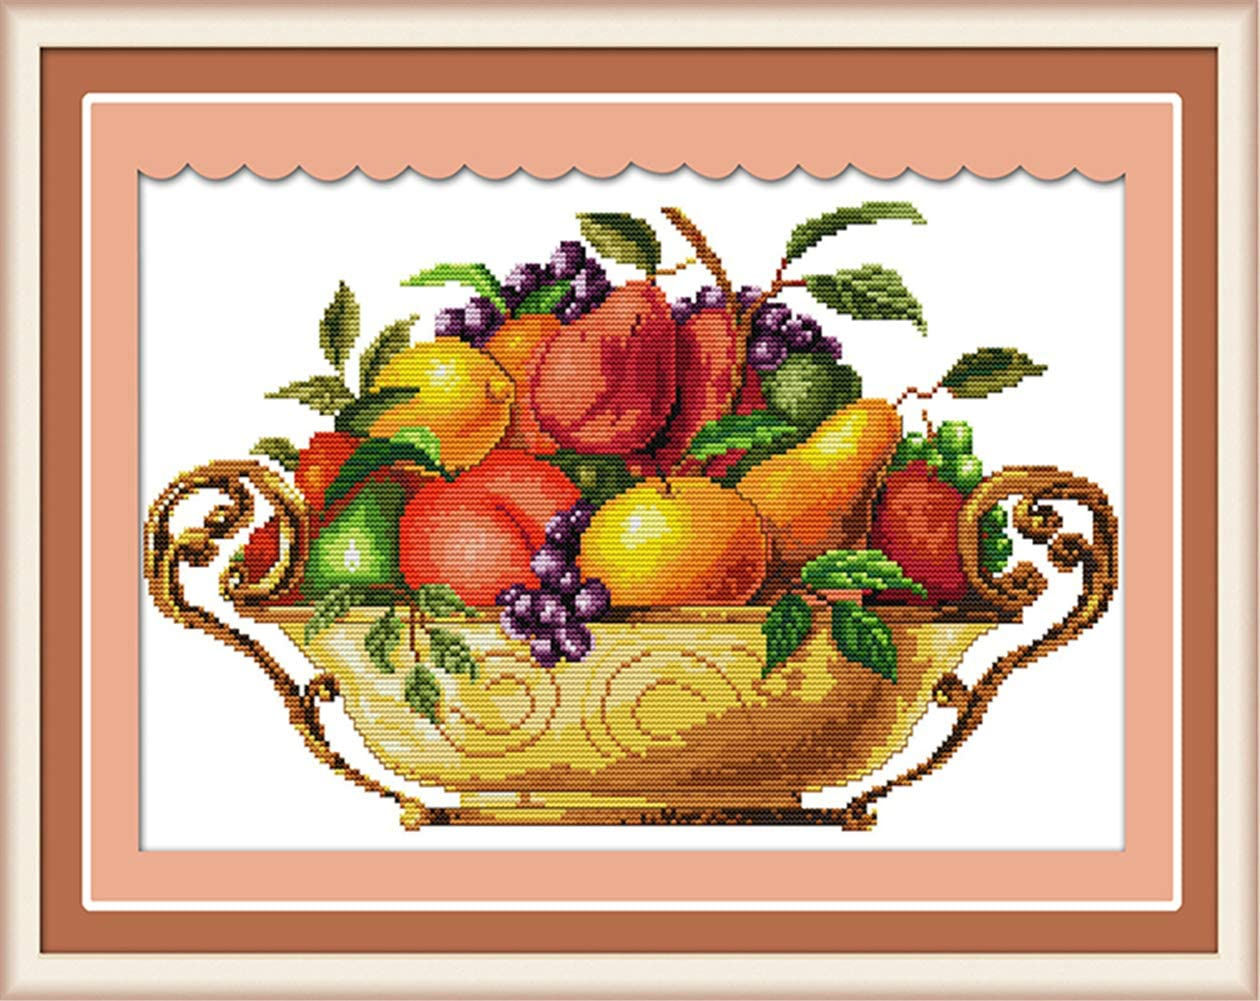 LanMent Fruit Dish Stamped Cross Stitch Counted Kits Cross-Stitching Pattern Embroidery for Beginner Adults Home Decor Birthday Gift 14CT 17.3 x 11 inches